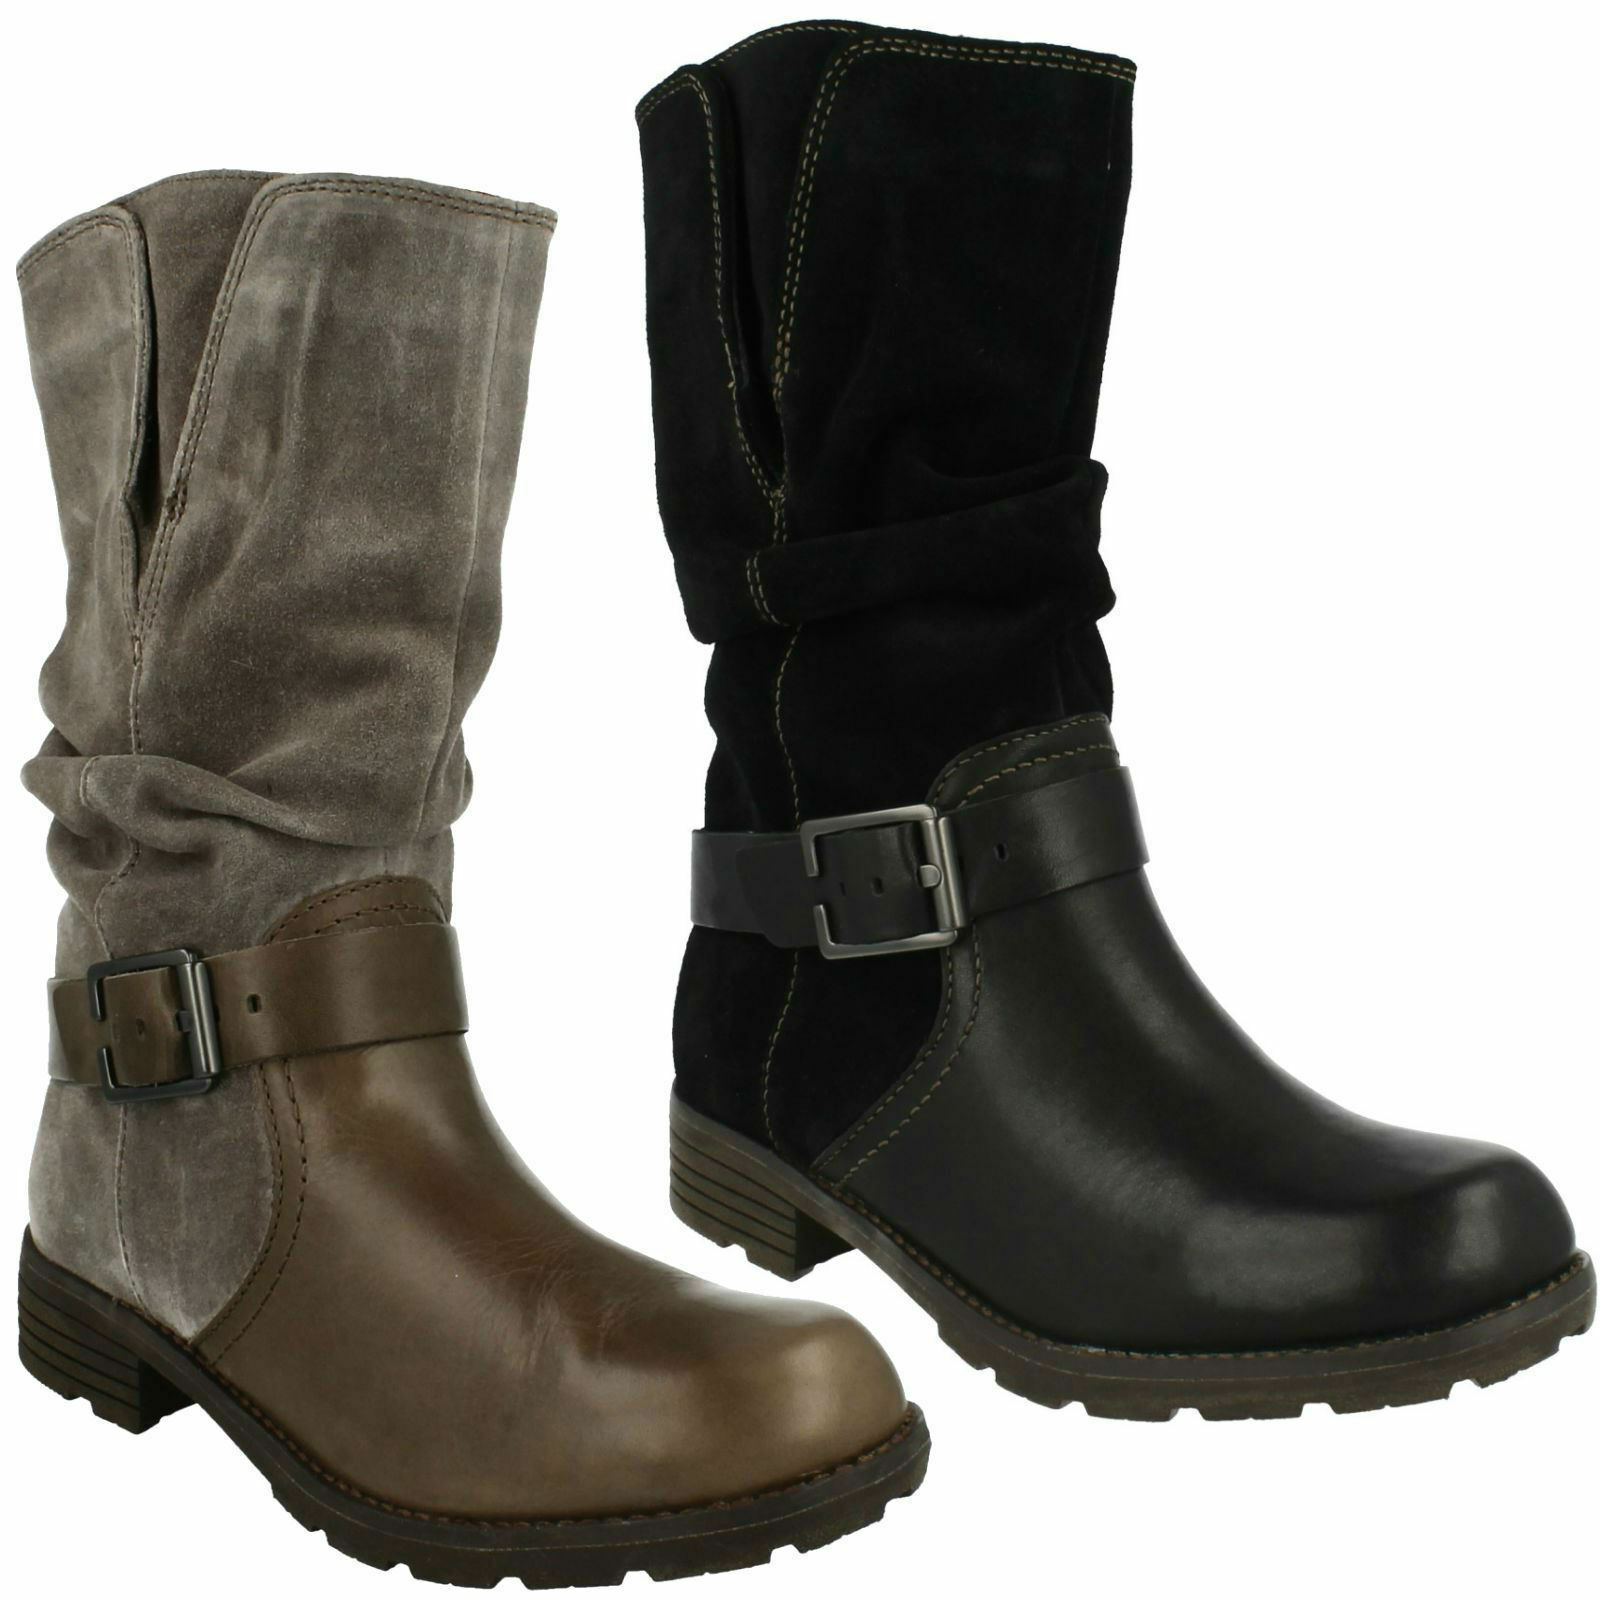 NATIONAL SPICE CLARKS LADIES LEATHER SUEDE WINTER BLACK GREY MID CALF BOOTS